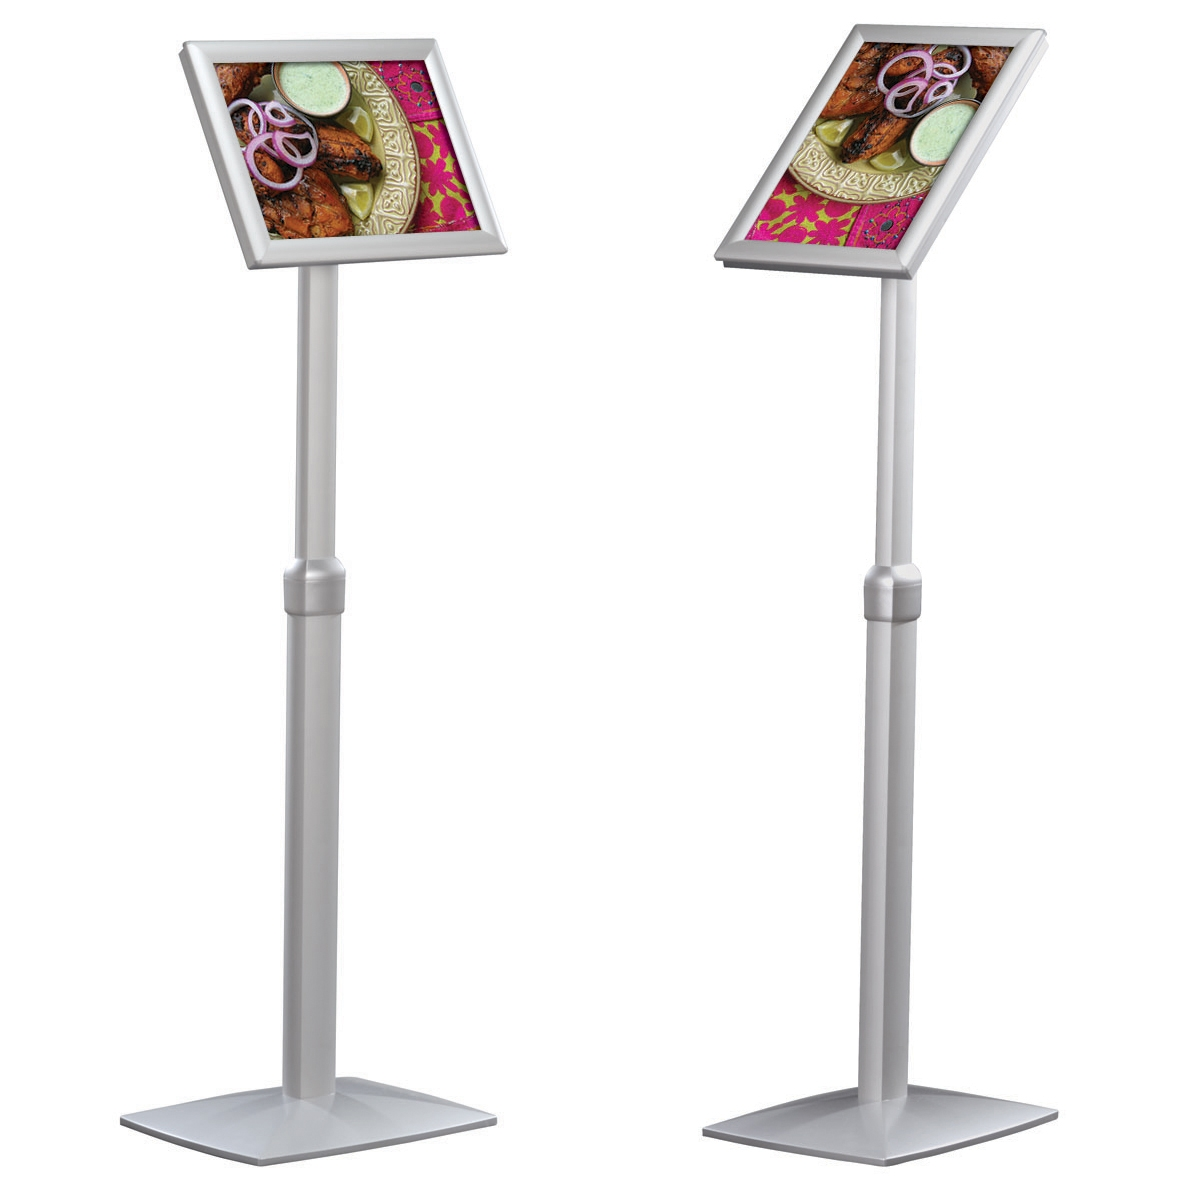 Telescopic Information Stands